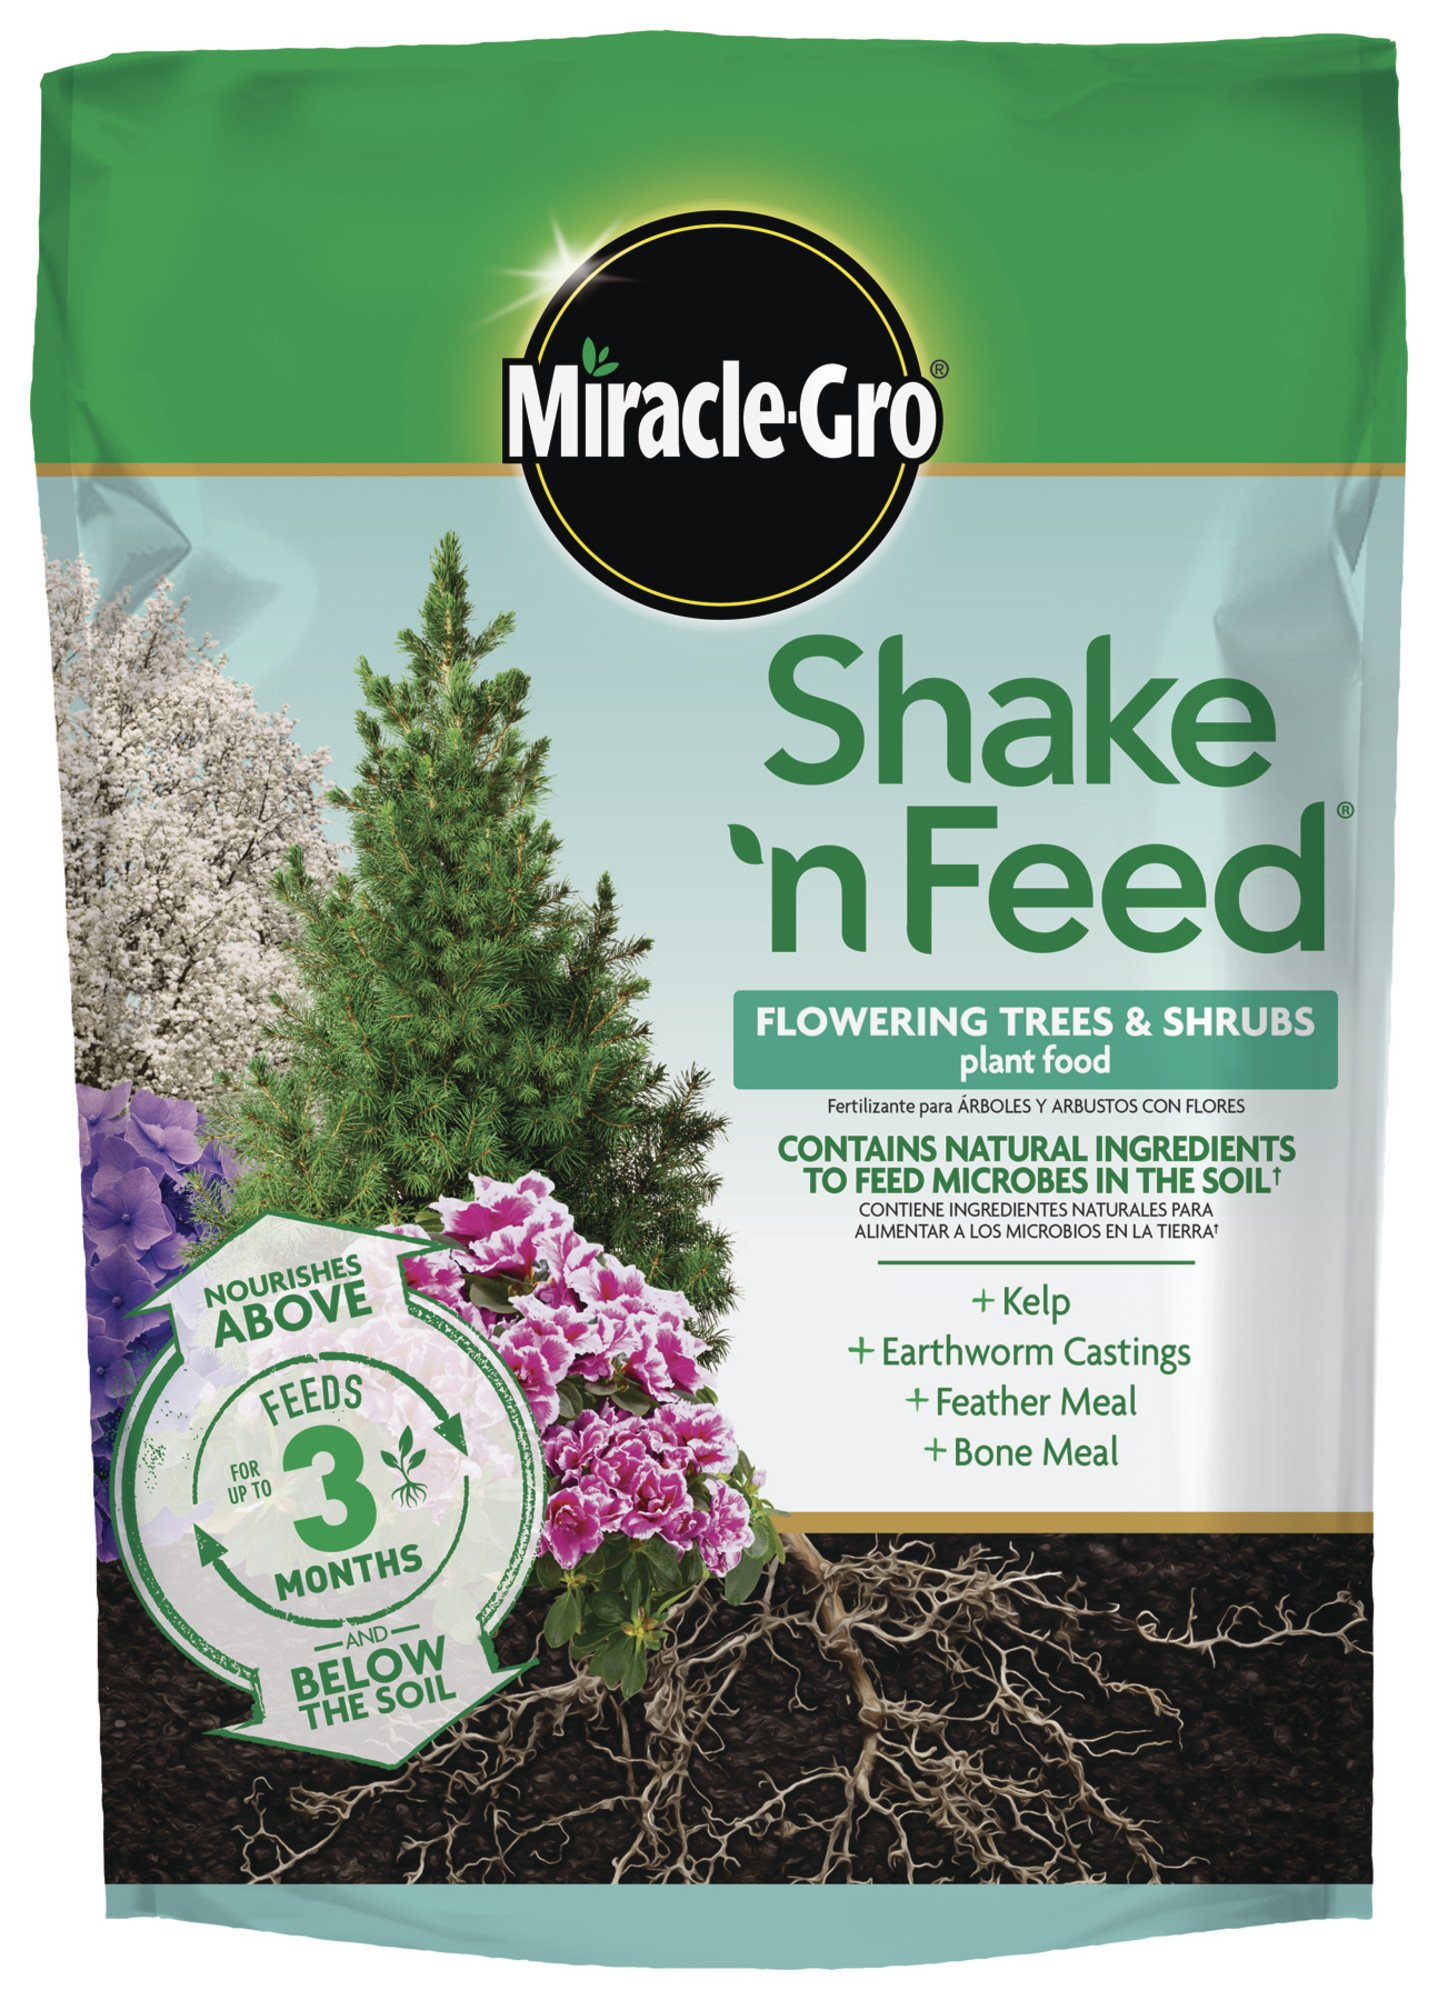 Miracle-Gro 3002410 Shake 'N Feed Flowering Trees and Shrubs Continuous Release Plant Food